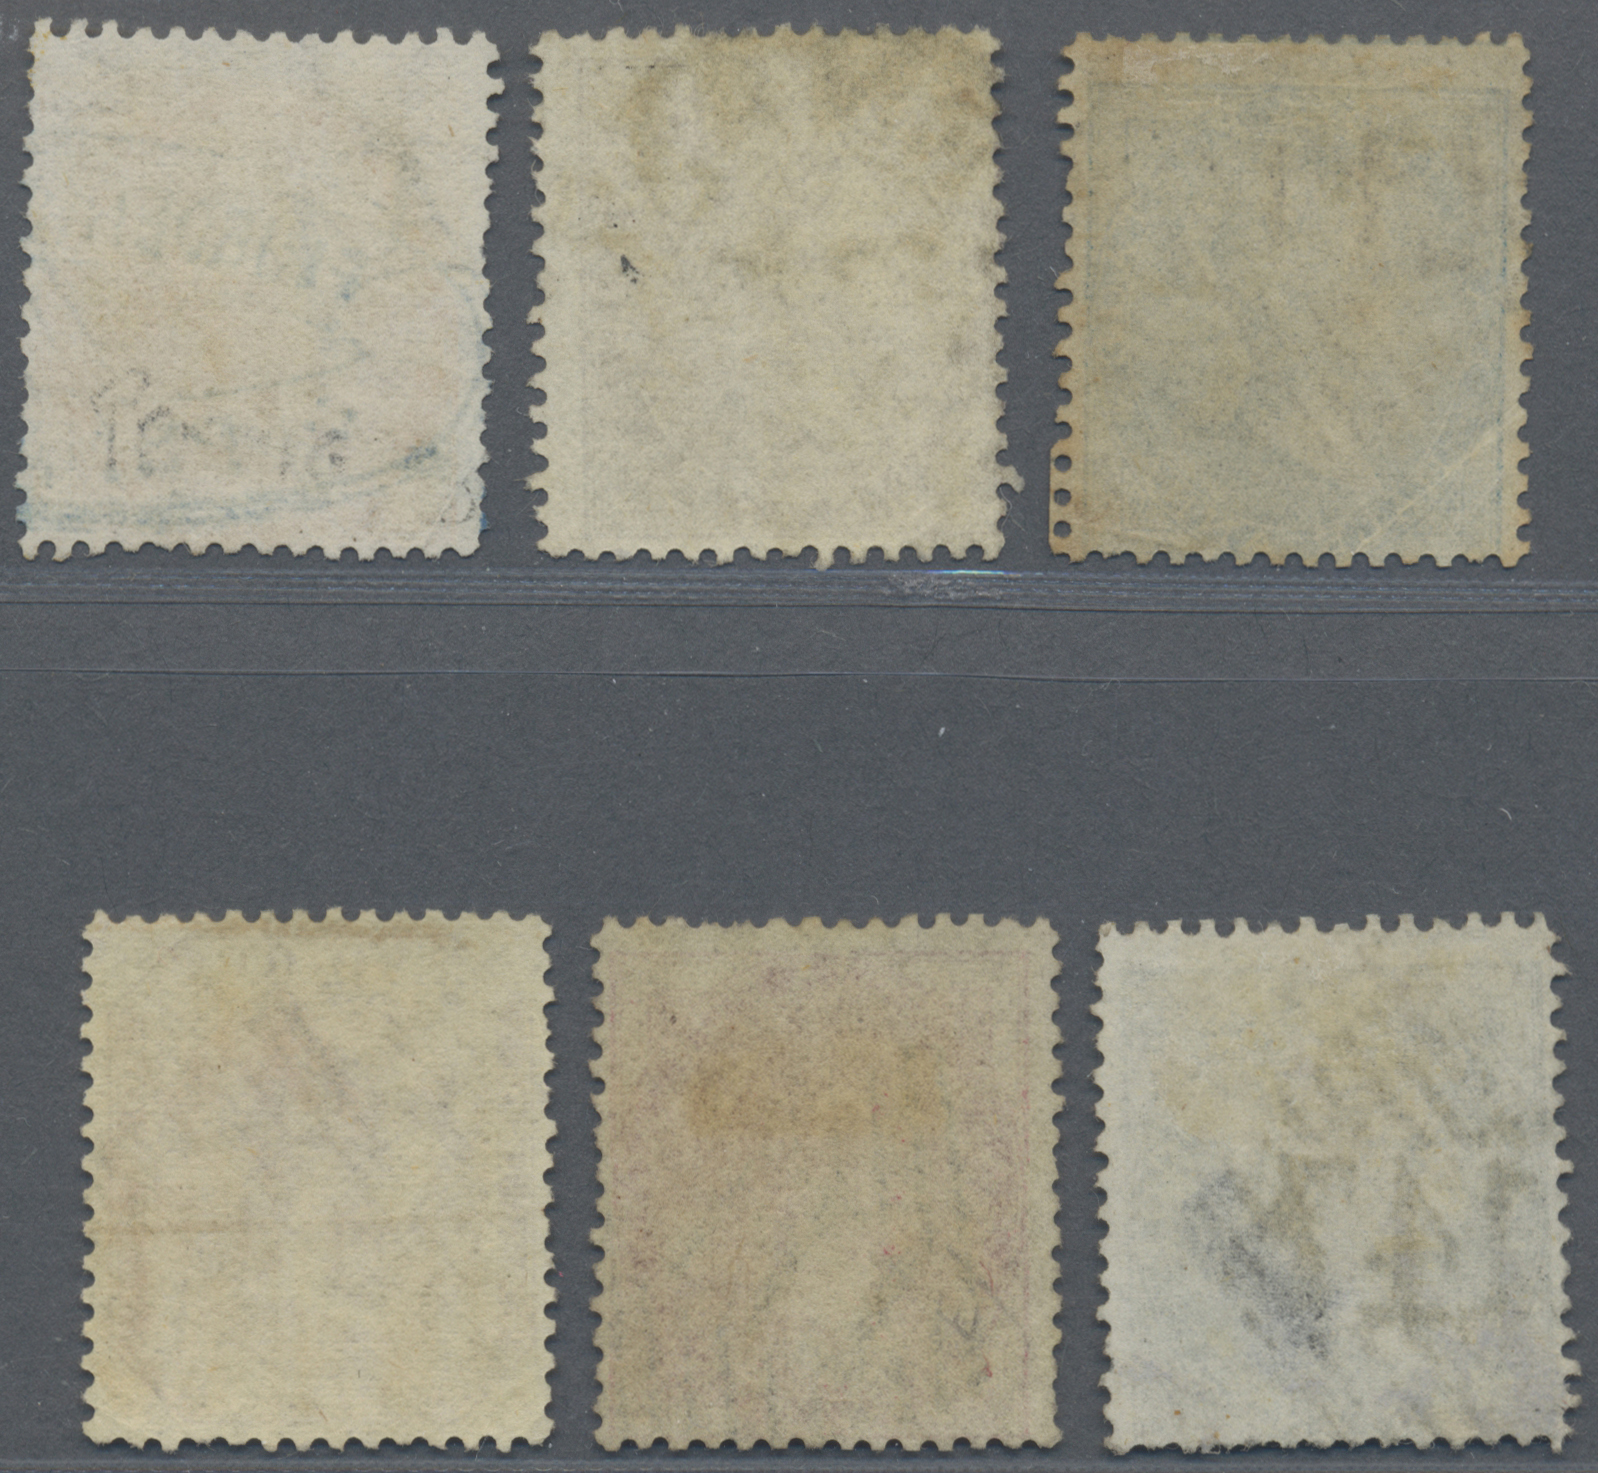 Lot 8432 - Malaiische Staaten - Straits Settlements  -  Auktionshaus Christoph Gärtner GmbH & Co. KG Philately: ASIA single lots including Special Catalog Malaya Auction #39 Day 3